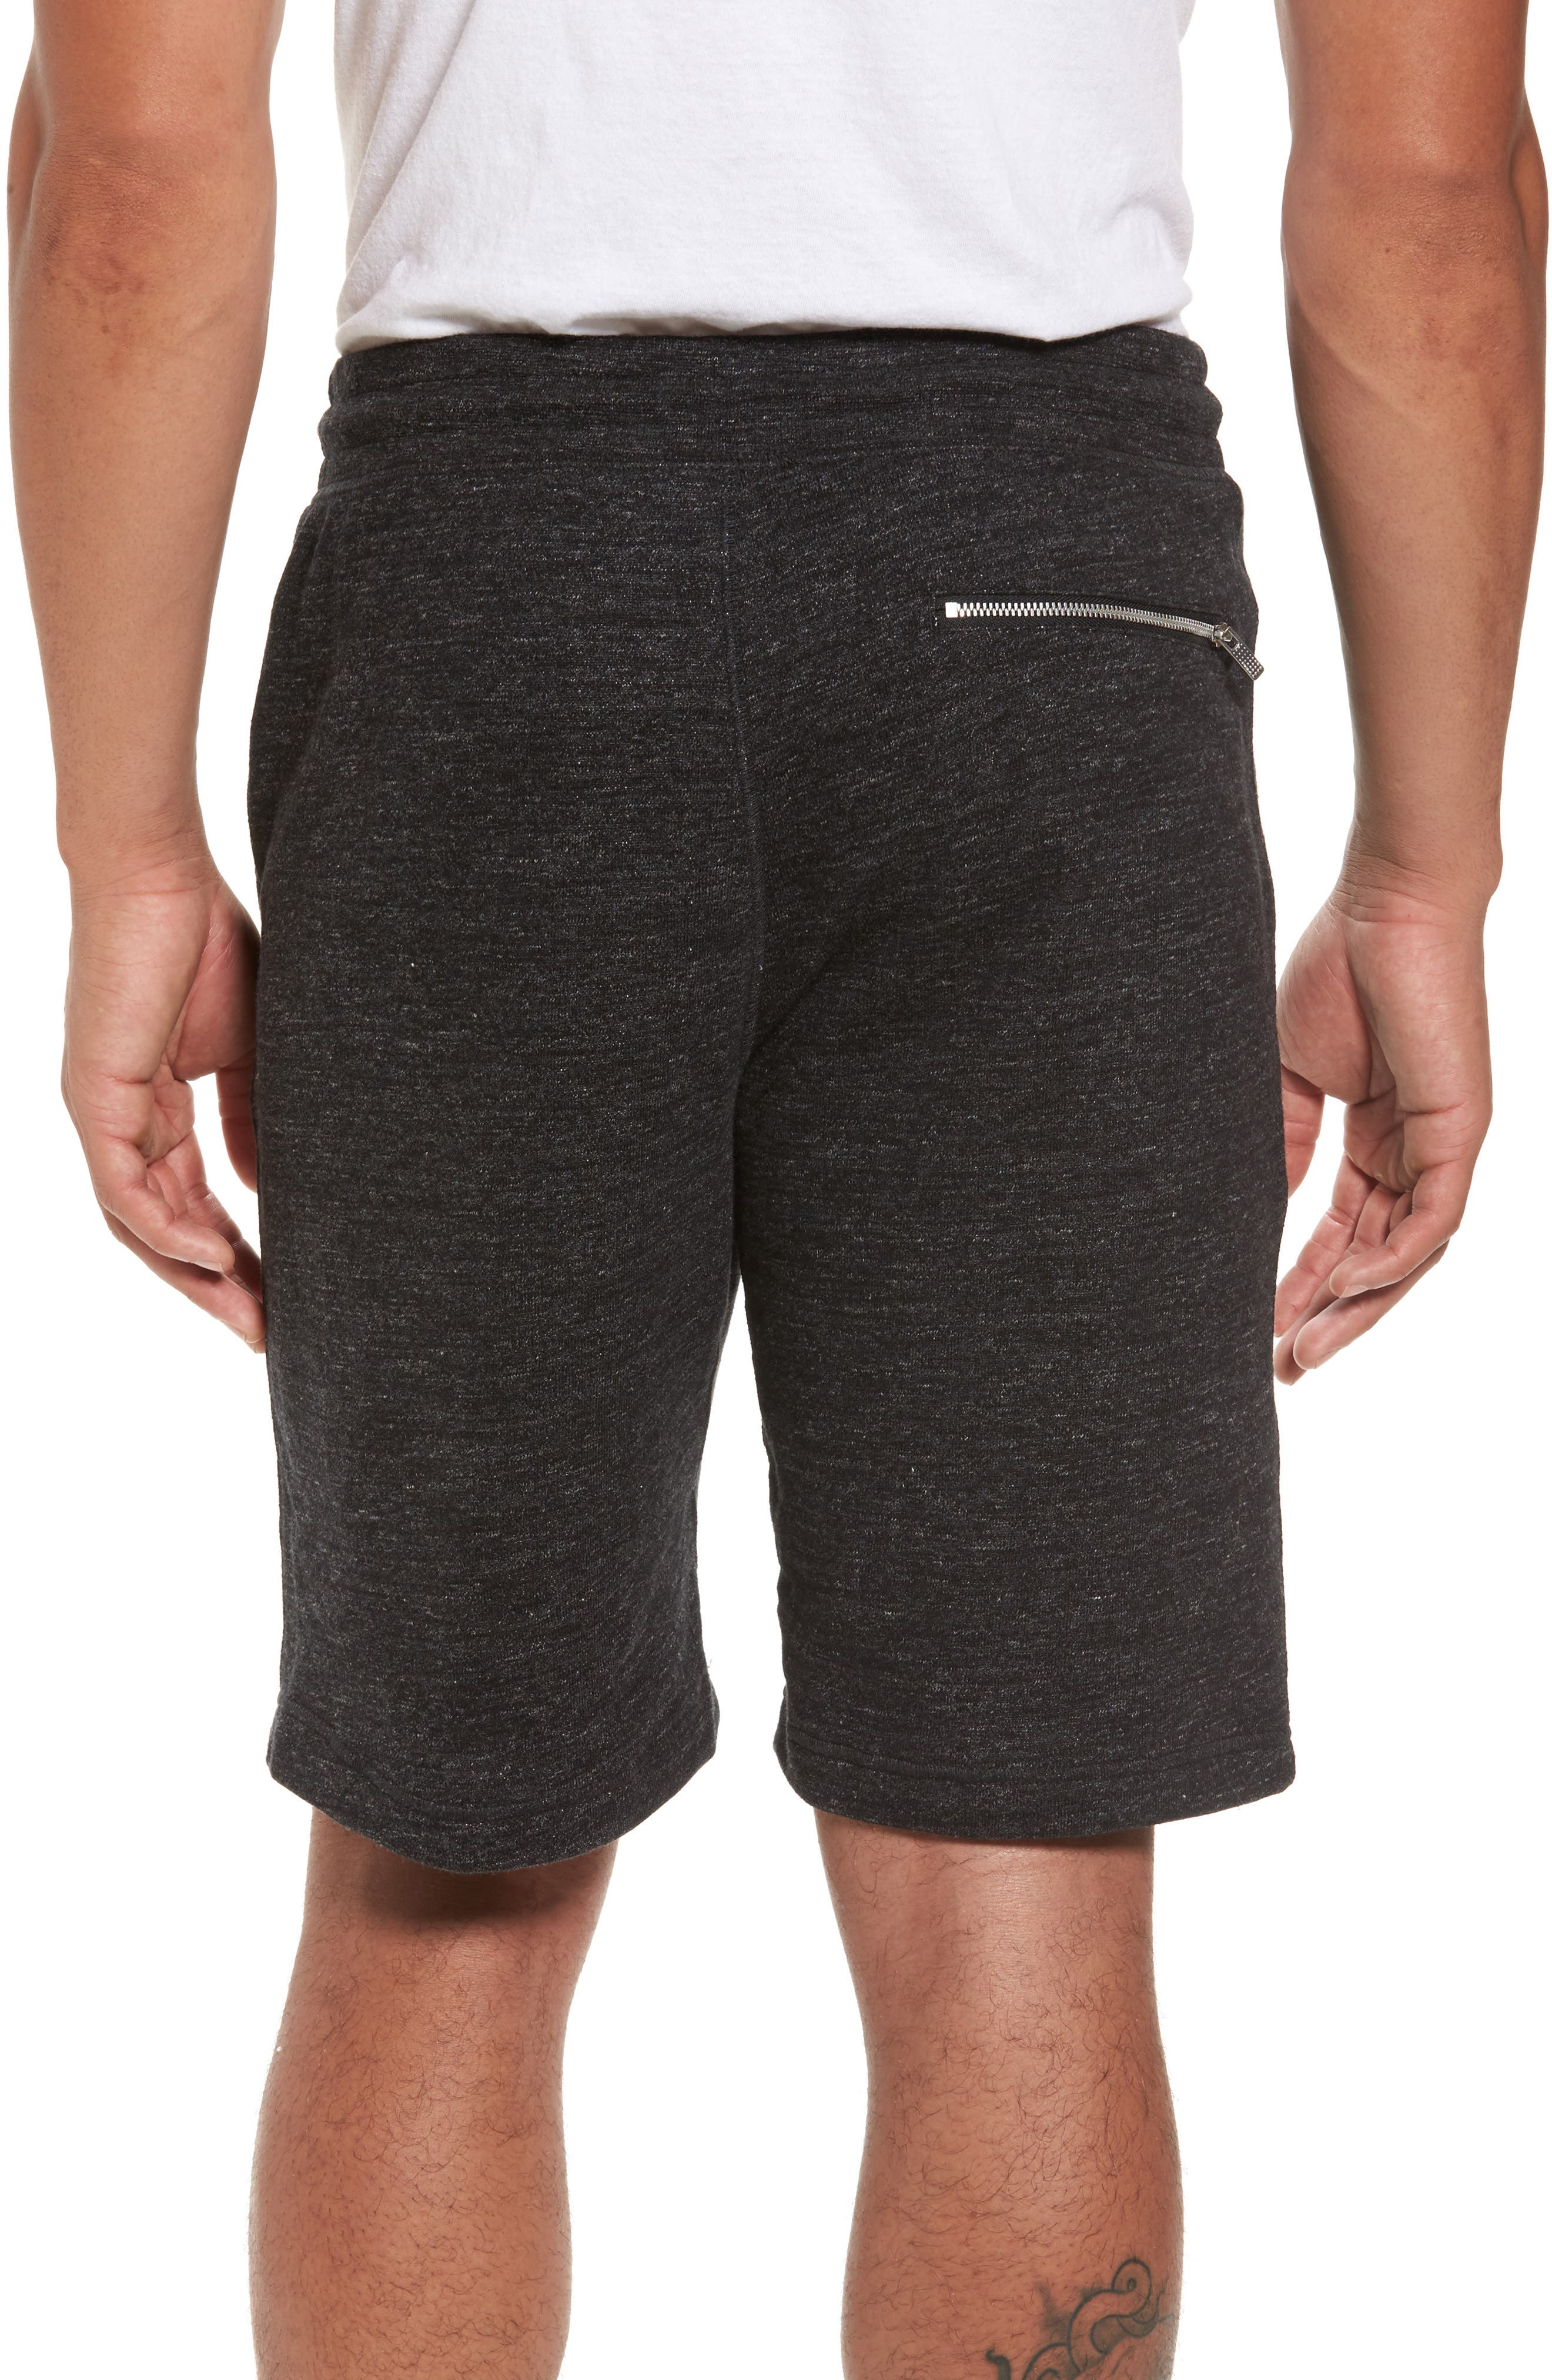 Legacy Knit Shorts,                             Alternate thumbnail 2, color,                             002